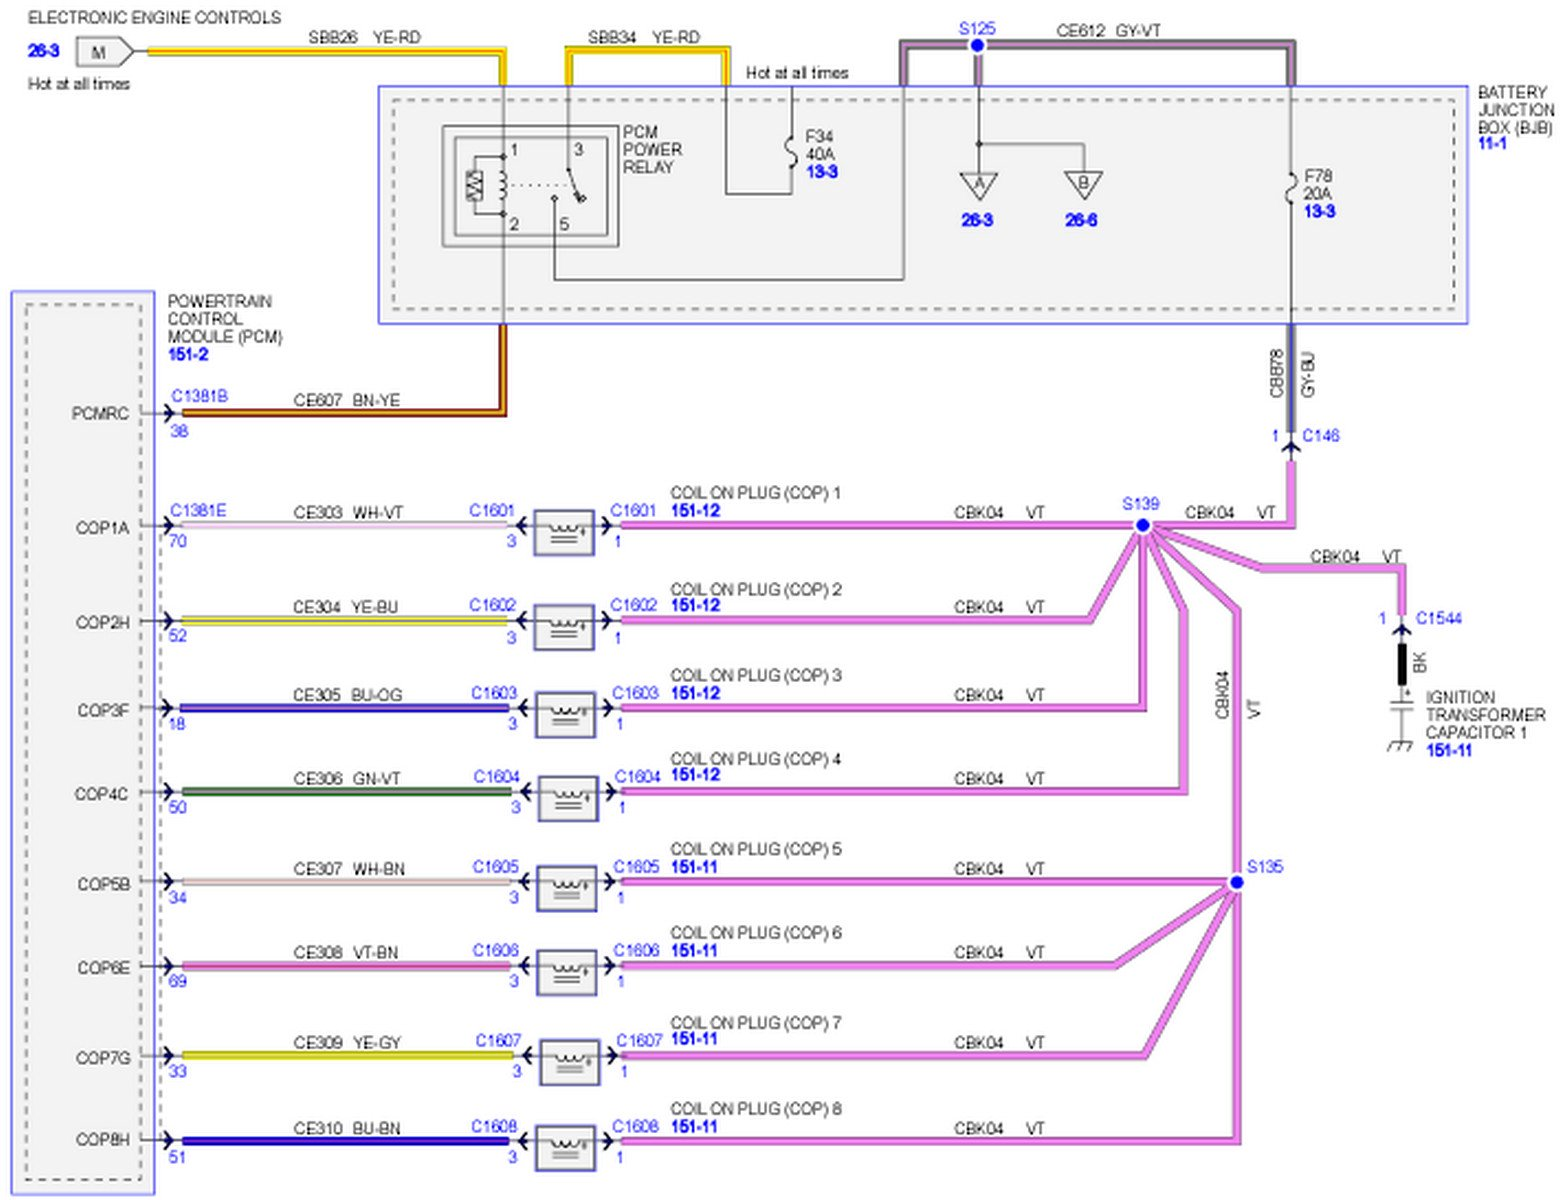 Dl 4733 Raychem Amc F5 Wiring Diagram Wiring Diagram